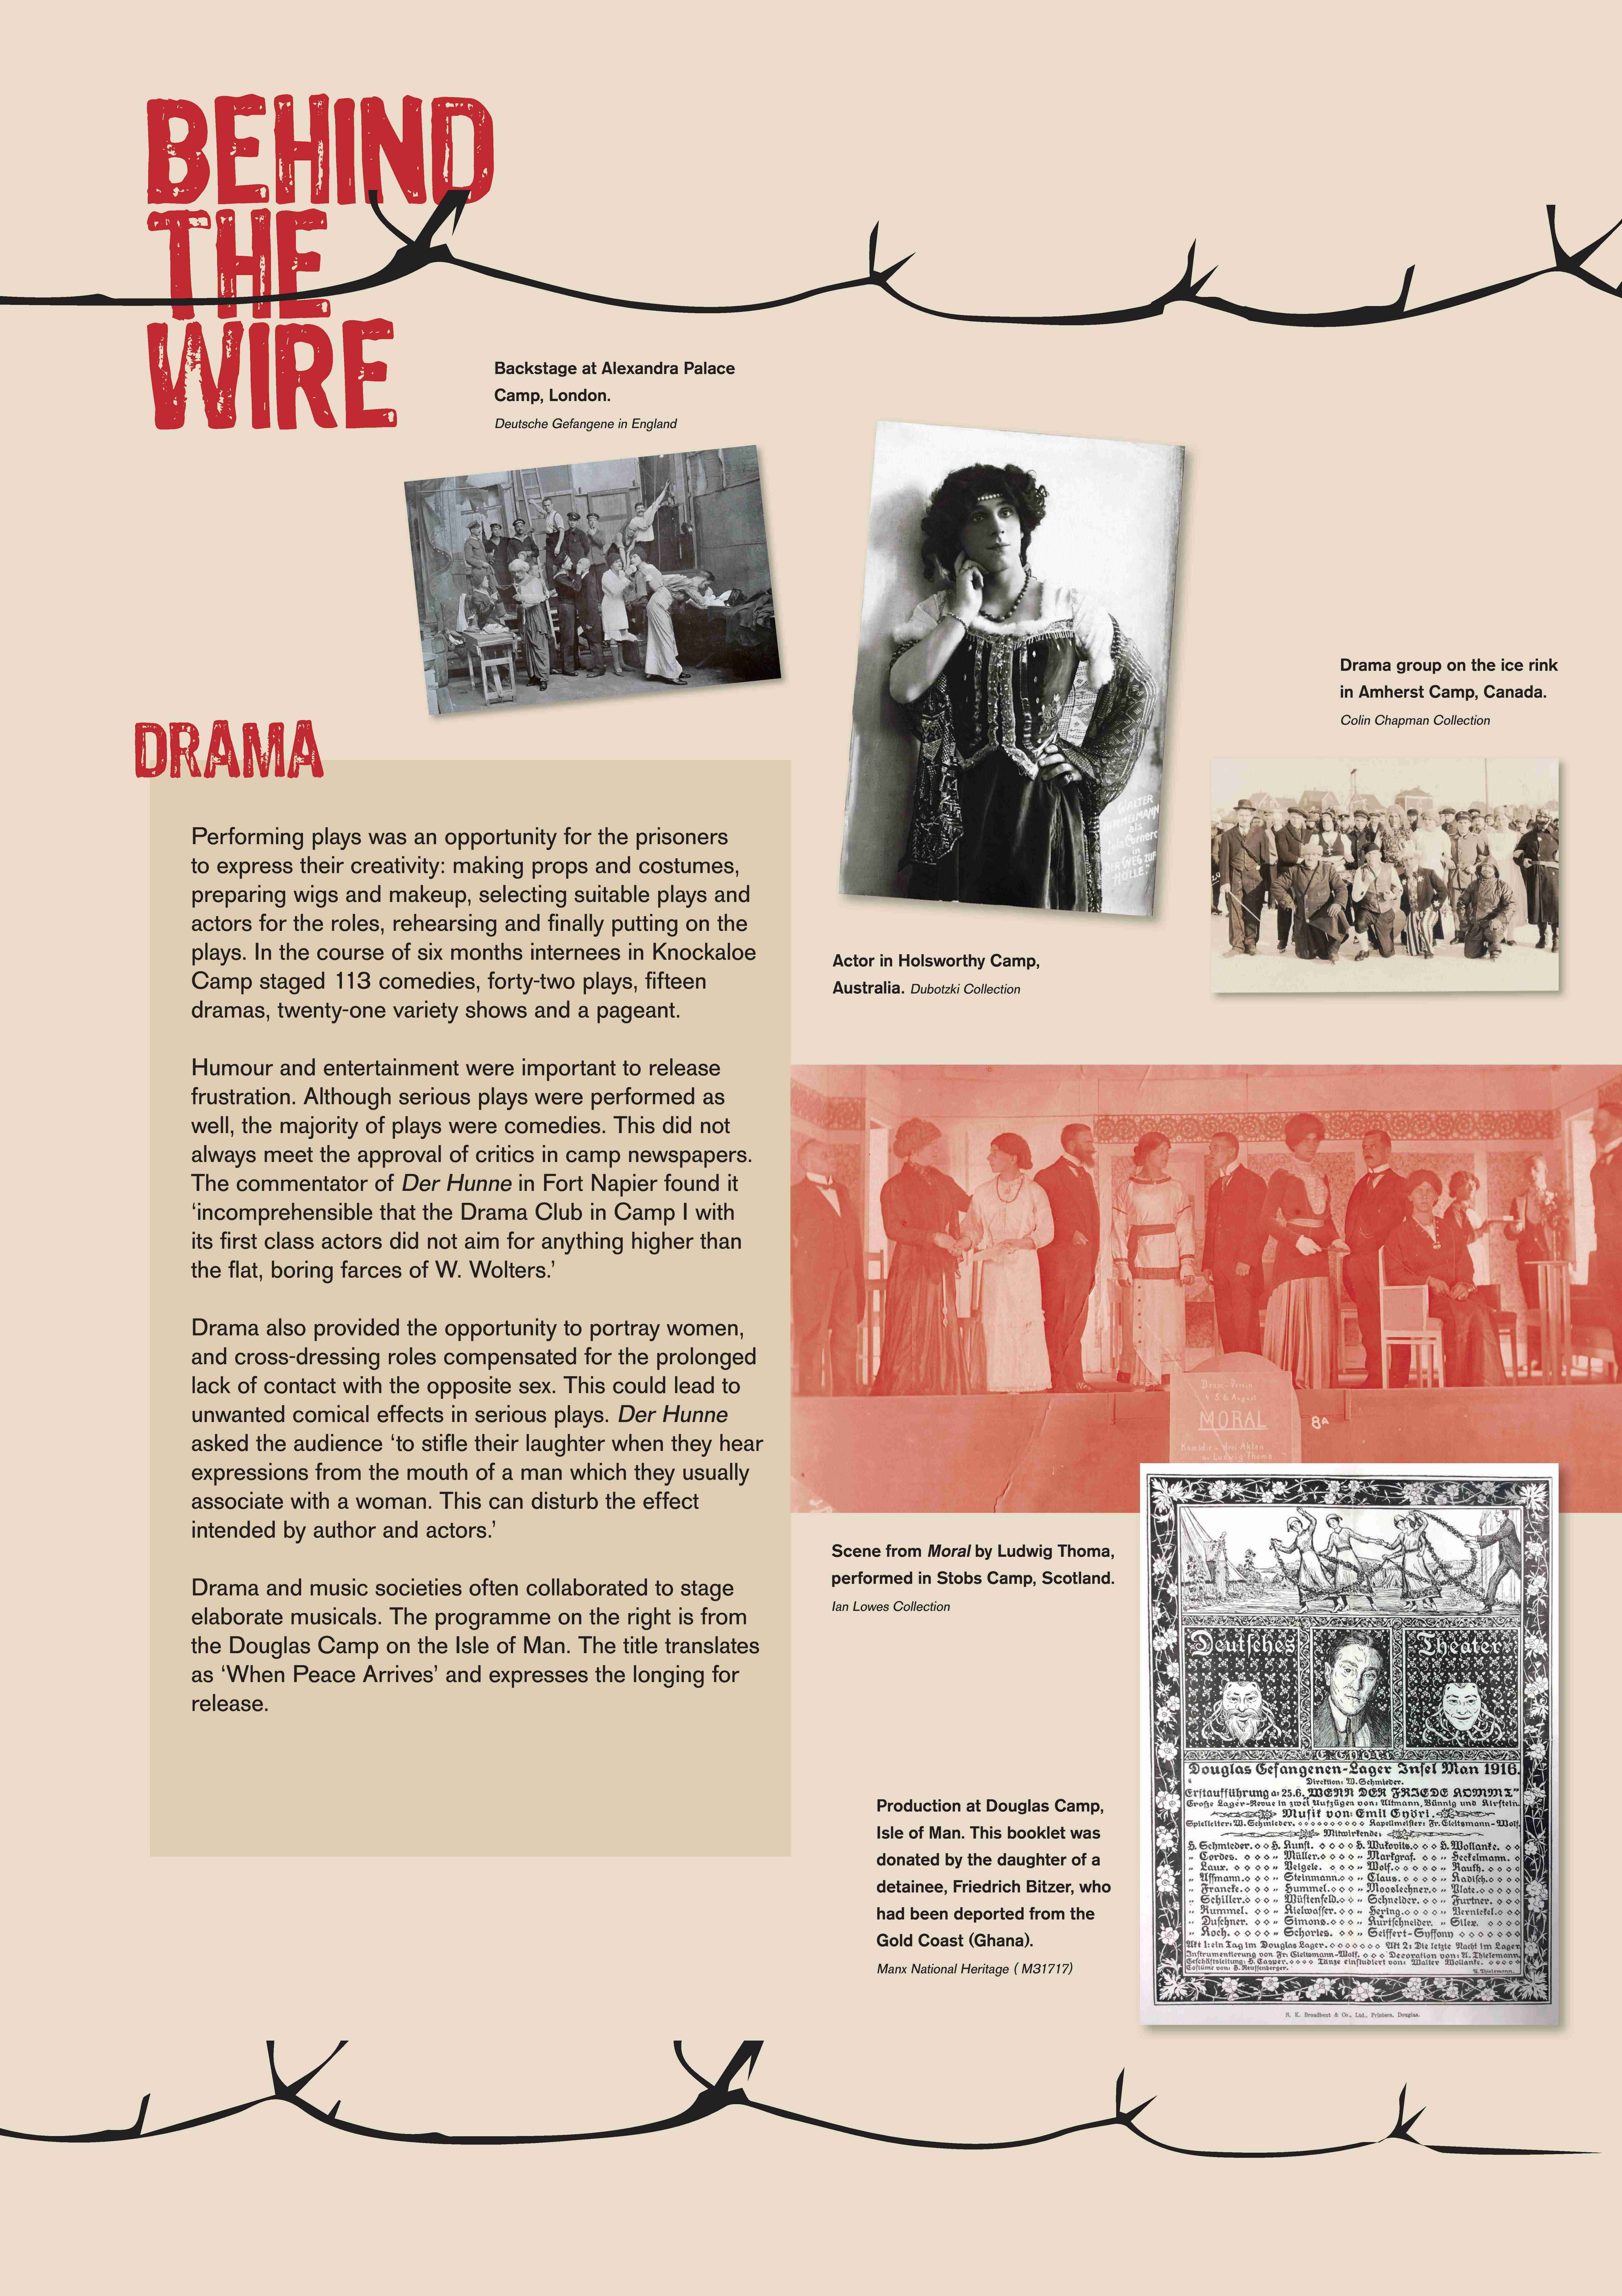 12-Behind the Wire-A1-Exhibition-Drama_DIGITAL VERSION-page-001 (1)-min-compressed